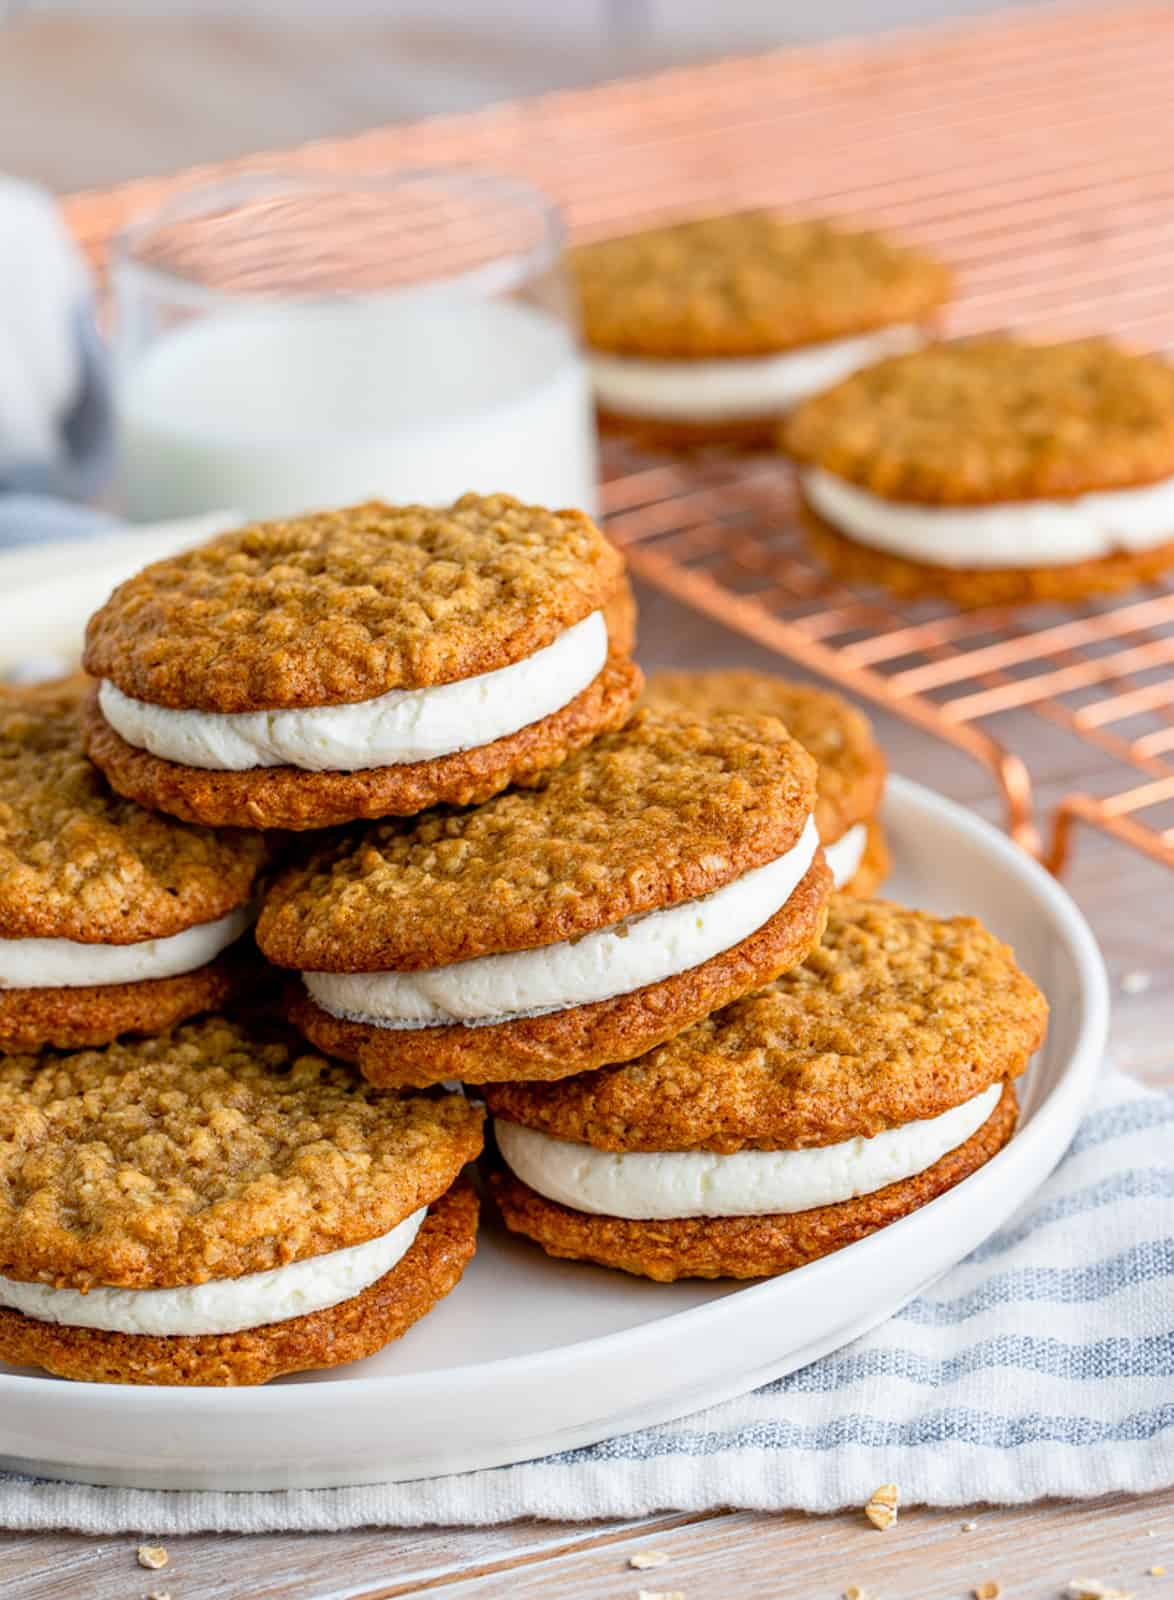 Oatmeal Cream Pies stacked on plate with milk in background